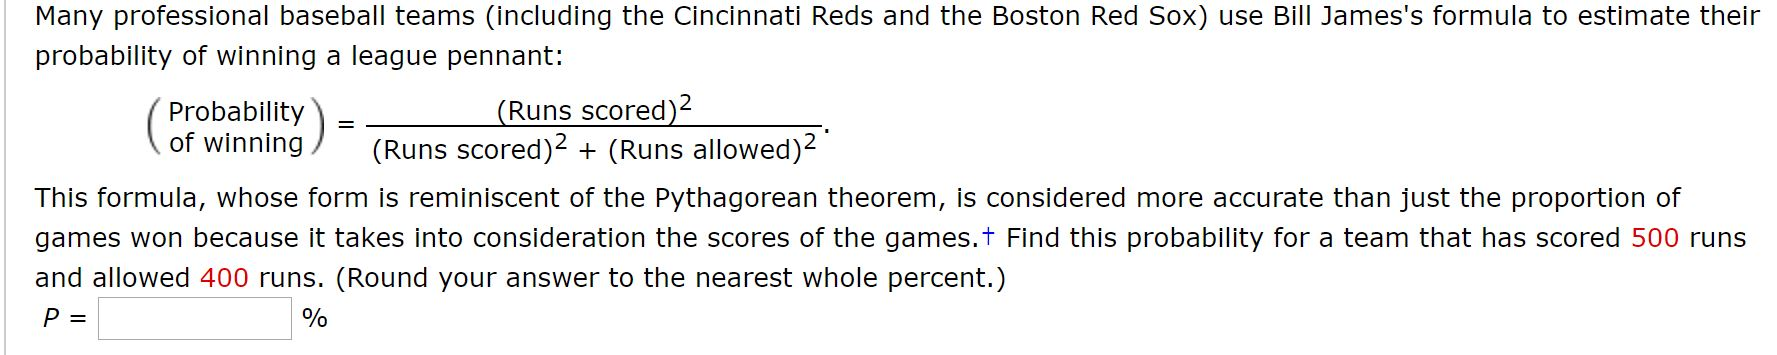 Many professional baseball teams (including the Cincinnati Reds and the Boston Red Sox) use Bill James's formula to estimate their probability of winning a league pennant: (Runs scored)2 (Runs scored)2 + (Runs allowed)2 Probability) of winning This formula, whose form is reminiscent of the Pythagorean theorem, is considered more accurate than just the proportion of games won because it takes into consideration the scores of the games.t Find this probability for a team that has scored 500 runs and allowed 400 runs. (Round your answer to the nearest whole percent.)